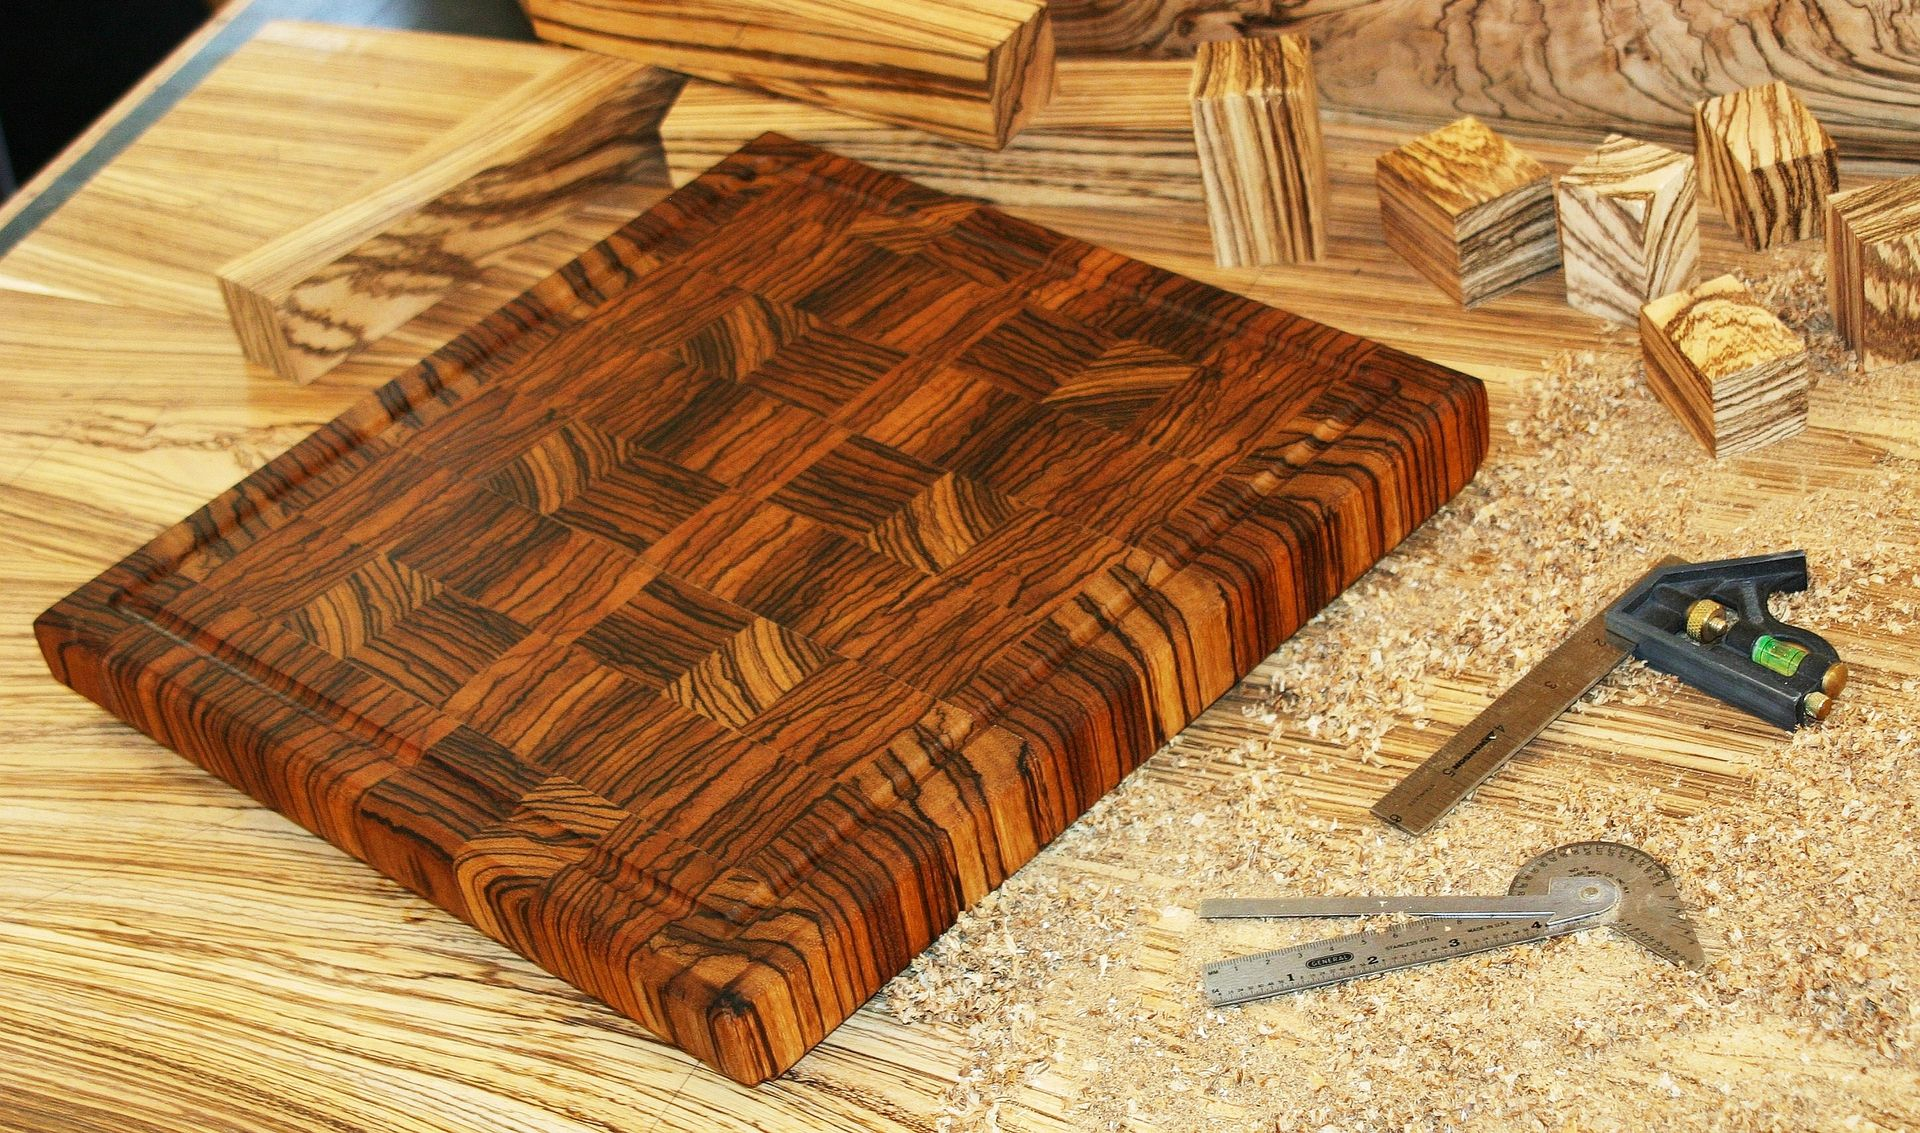 Hand made zebrawood end grain cutting board by carolina wood designs - Design wood in ...